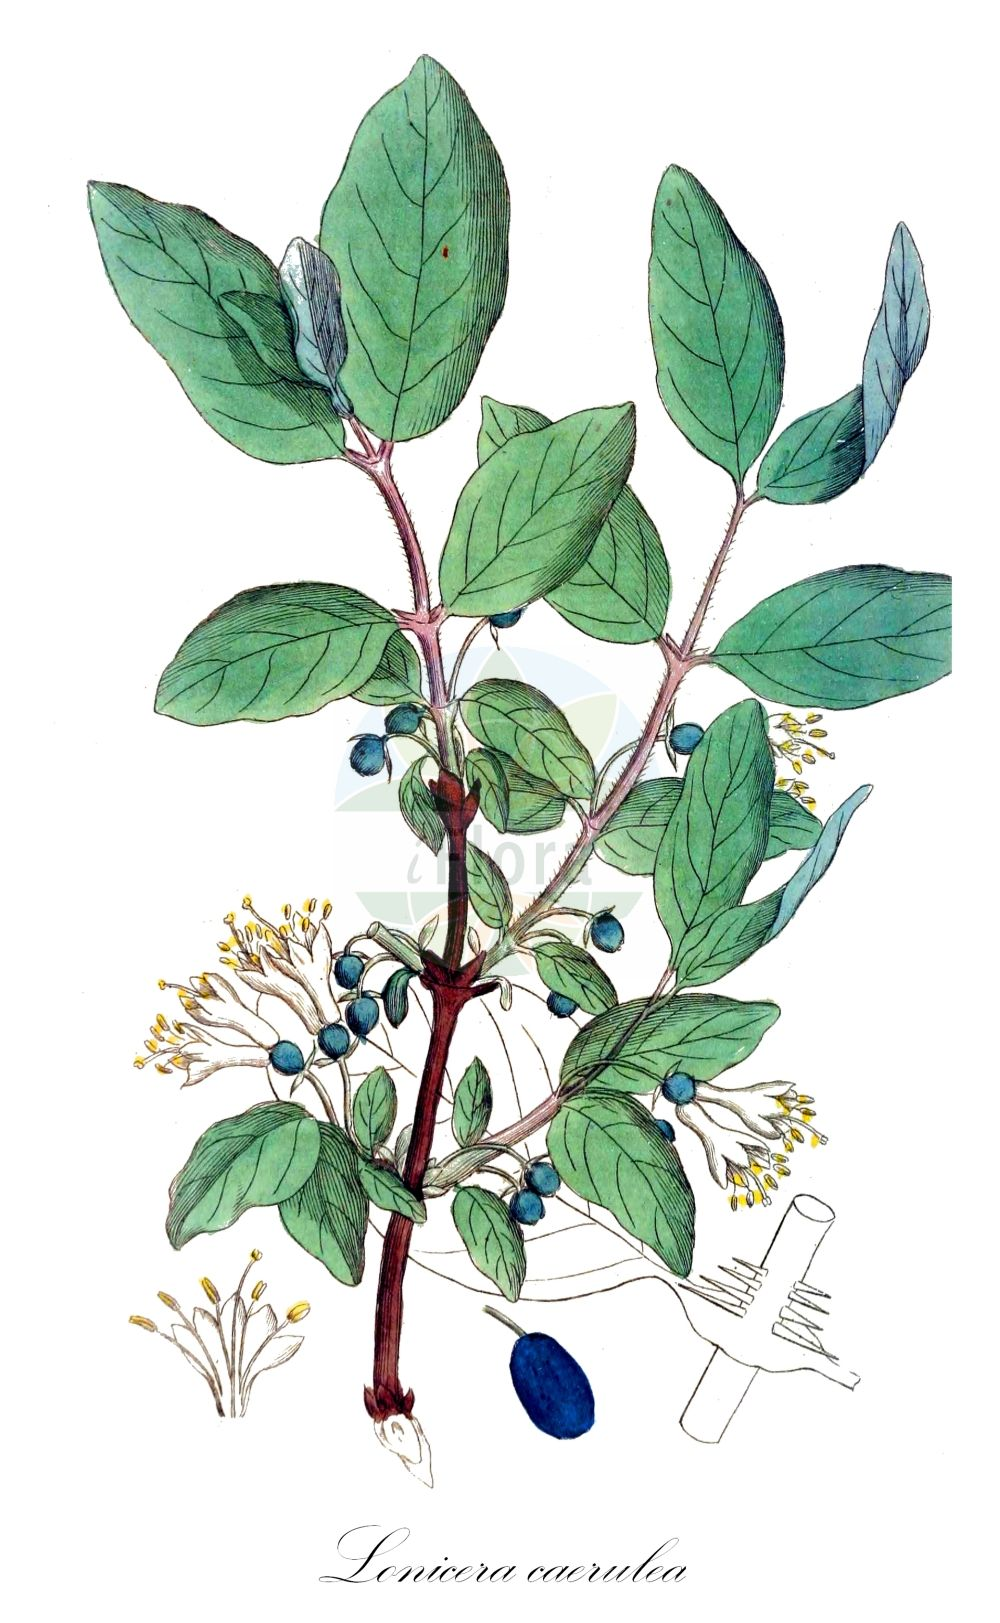 Historische Abbildung von Lonicera caerulea (Blaue Heckenkirsche - Blue-berried Honeysuckle). Das Bild zeigt Blatt, Bluete, Frucht und Same. ---- Historical Drawing of Lonicera caerulea (Blaue Heckenkirsche - Blue-berried Honeysuckle).The image is showing leaf, flower, fruit and seed.(Lonicera caerulea,Blaue Heckenkirsche,Blue-berried Honeysuckle,Caprifolium borbasianum,Lonicera borbasiana,,Blaues Geissblatt,Blue Honeysuckle,Weetberry Honeysuckle,Sweetberry Honeysuckle,Lonicera,Heckenkirsche,Honeysuckle,Caprifoliaceae,Geissblattgewaechse,Honeysuckle family,Blatt,Bluete,Frucht,Same,leaf,flower,fruit,seed,Palmstruch (1807-1843))